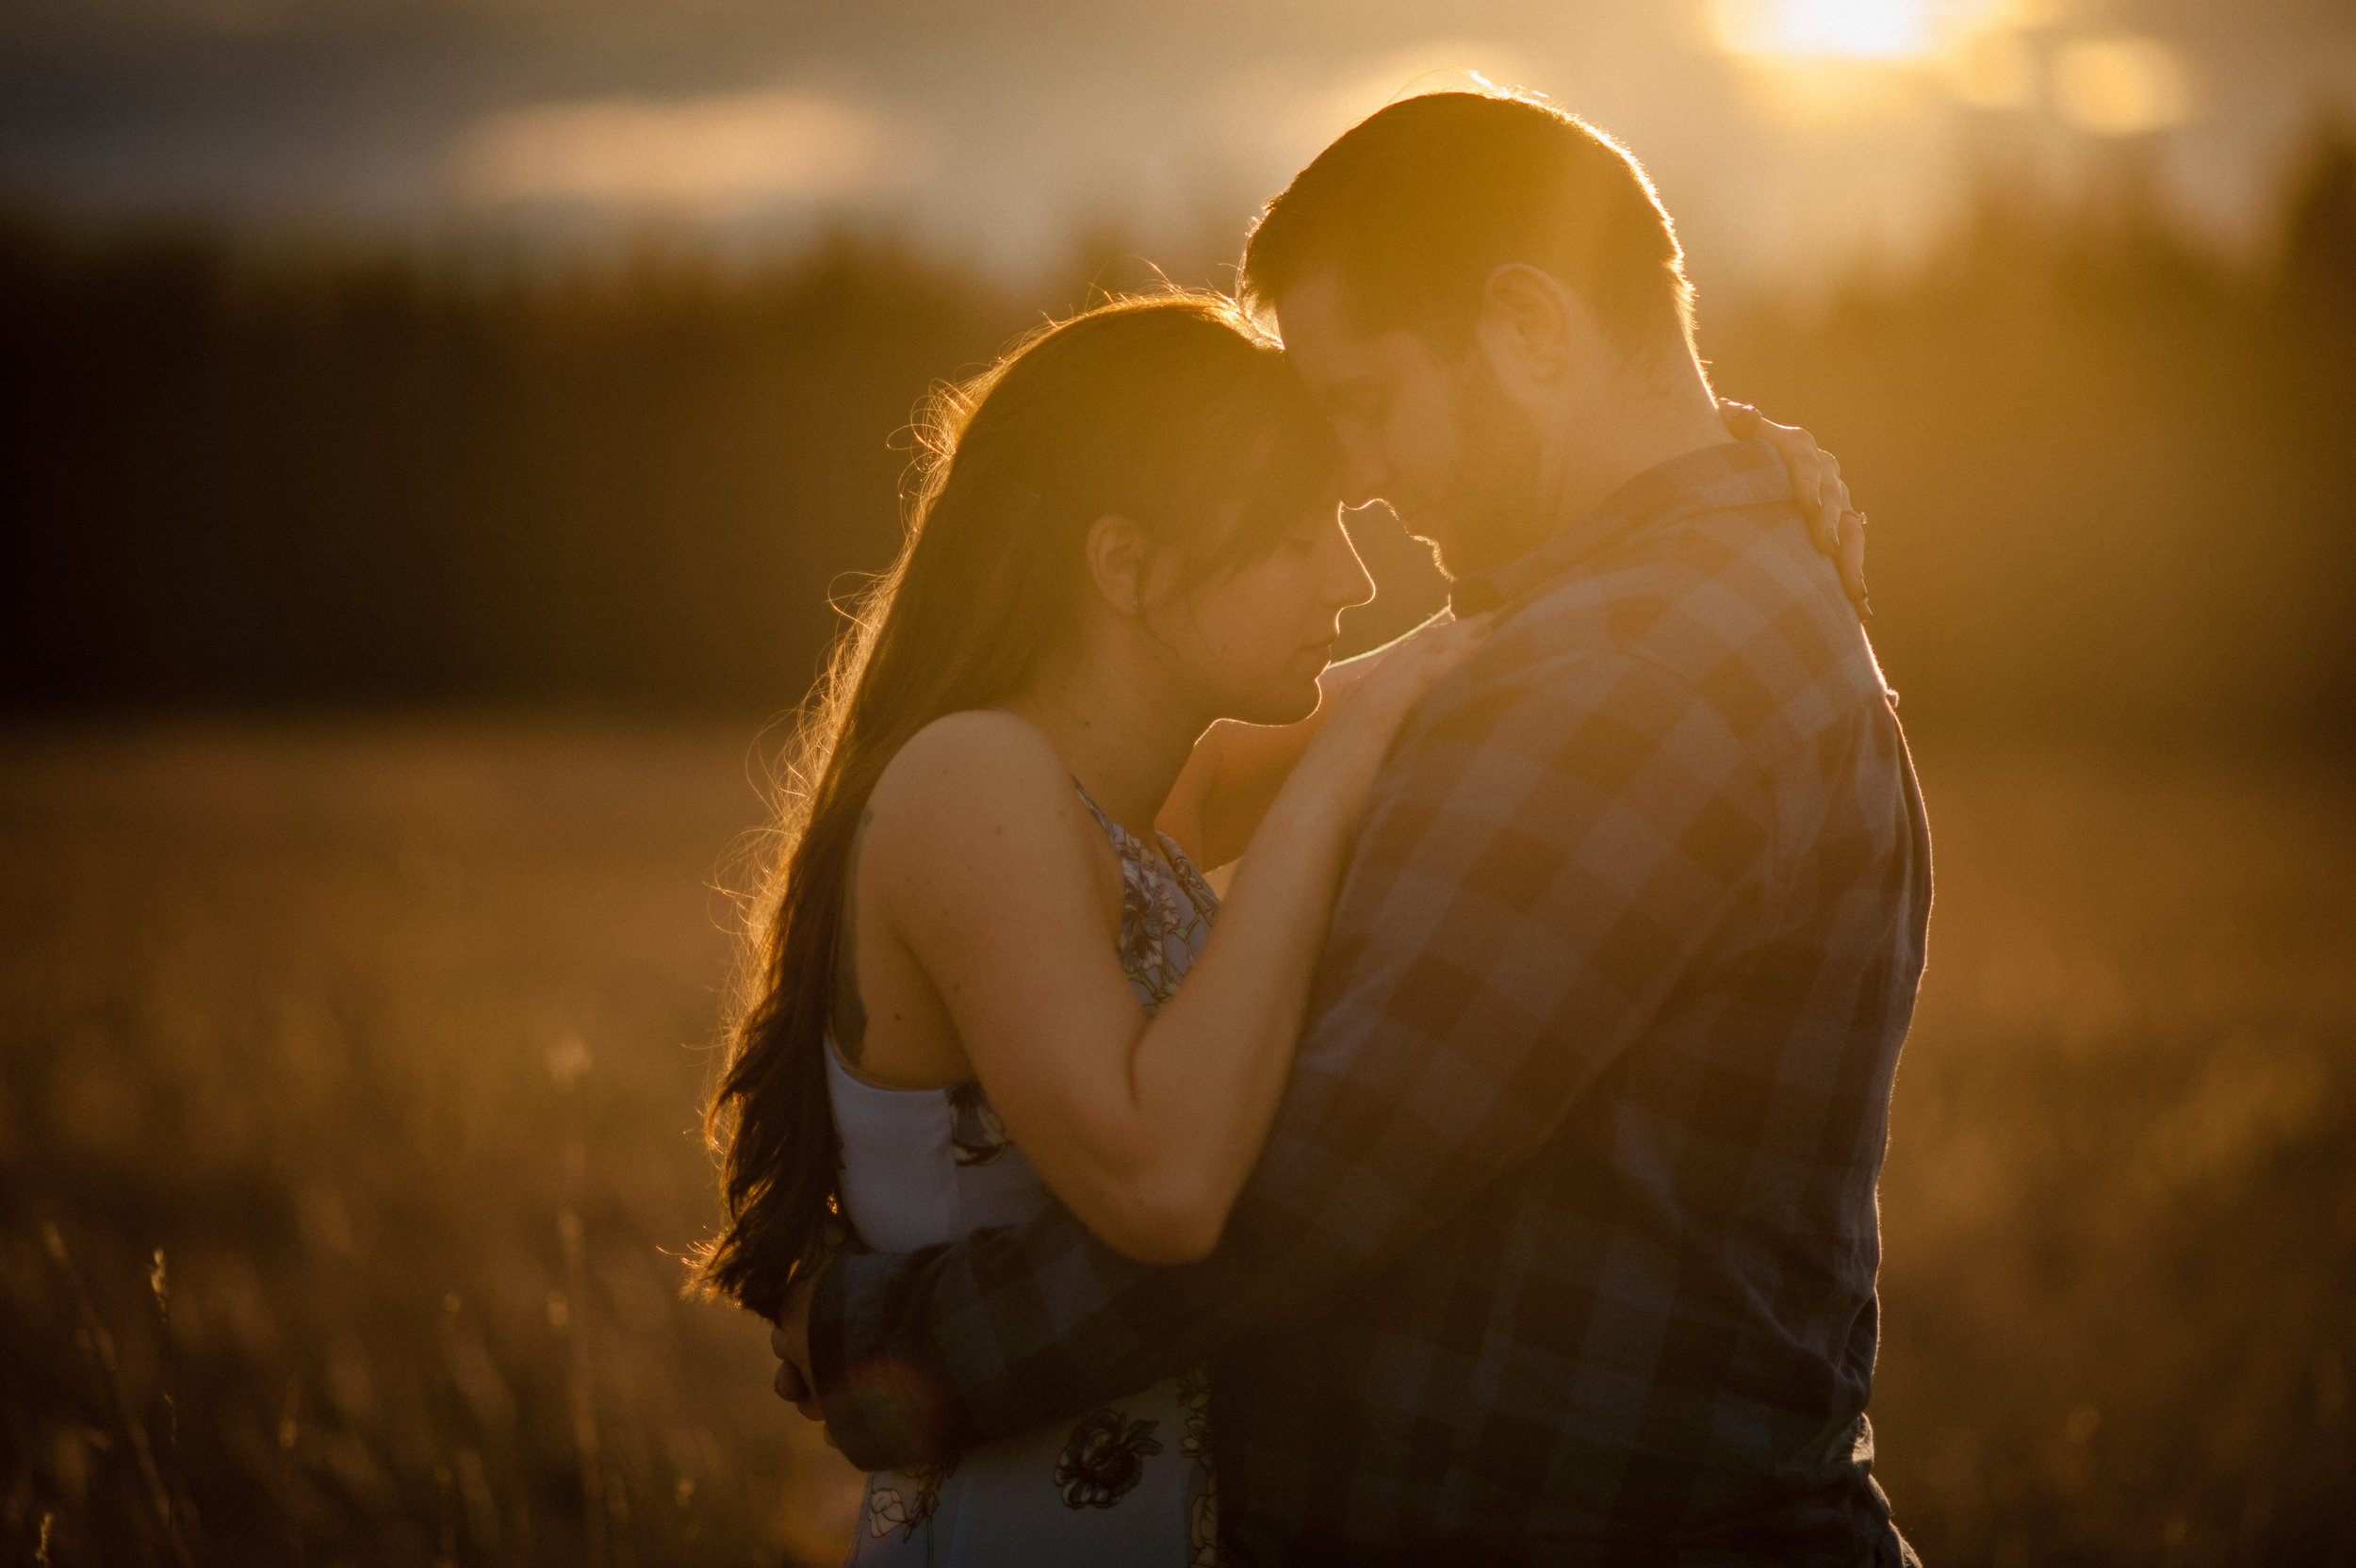 Beautiful golden light engagement photo